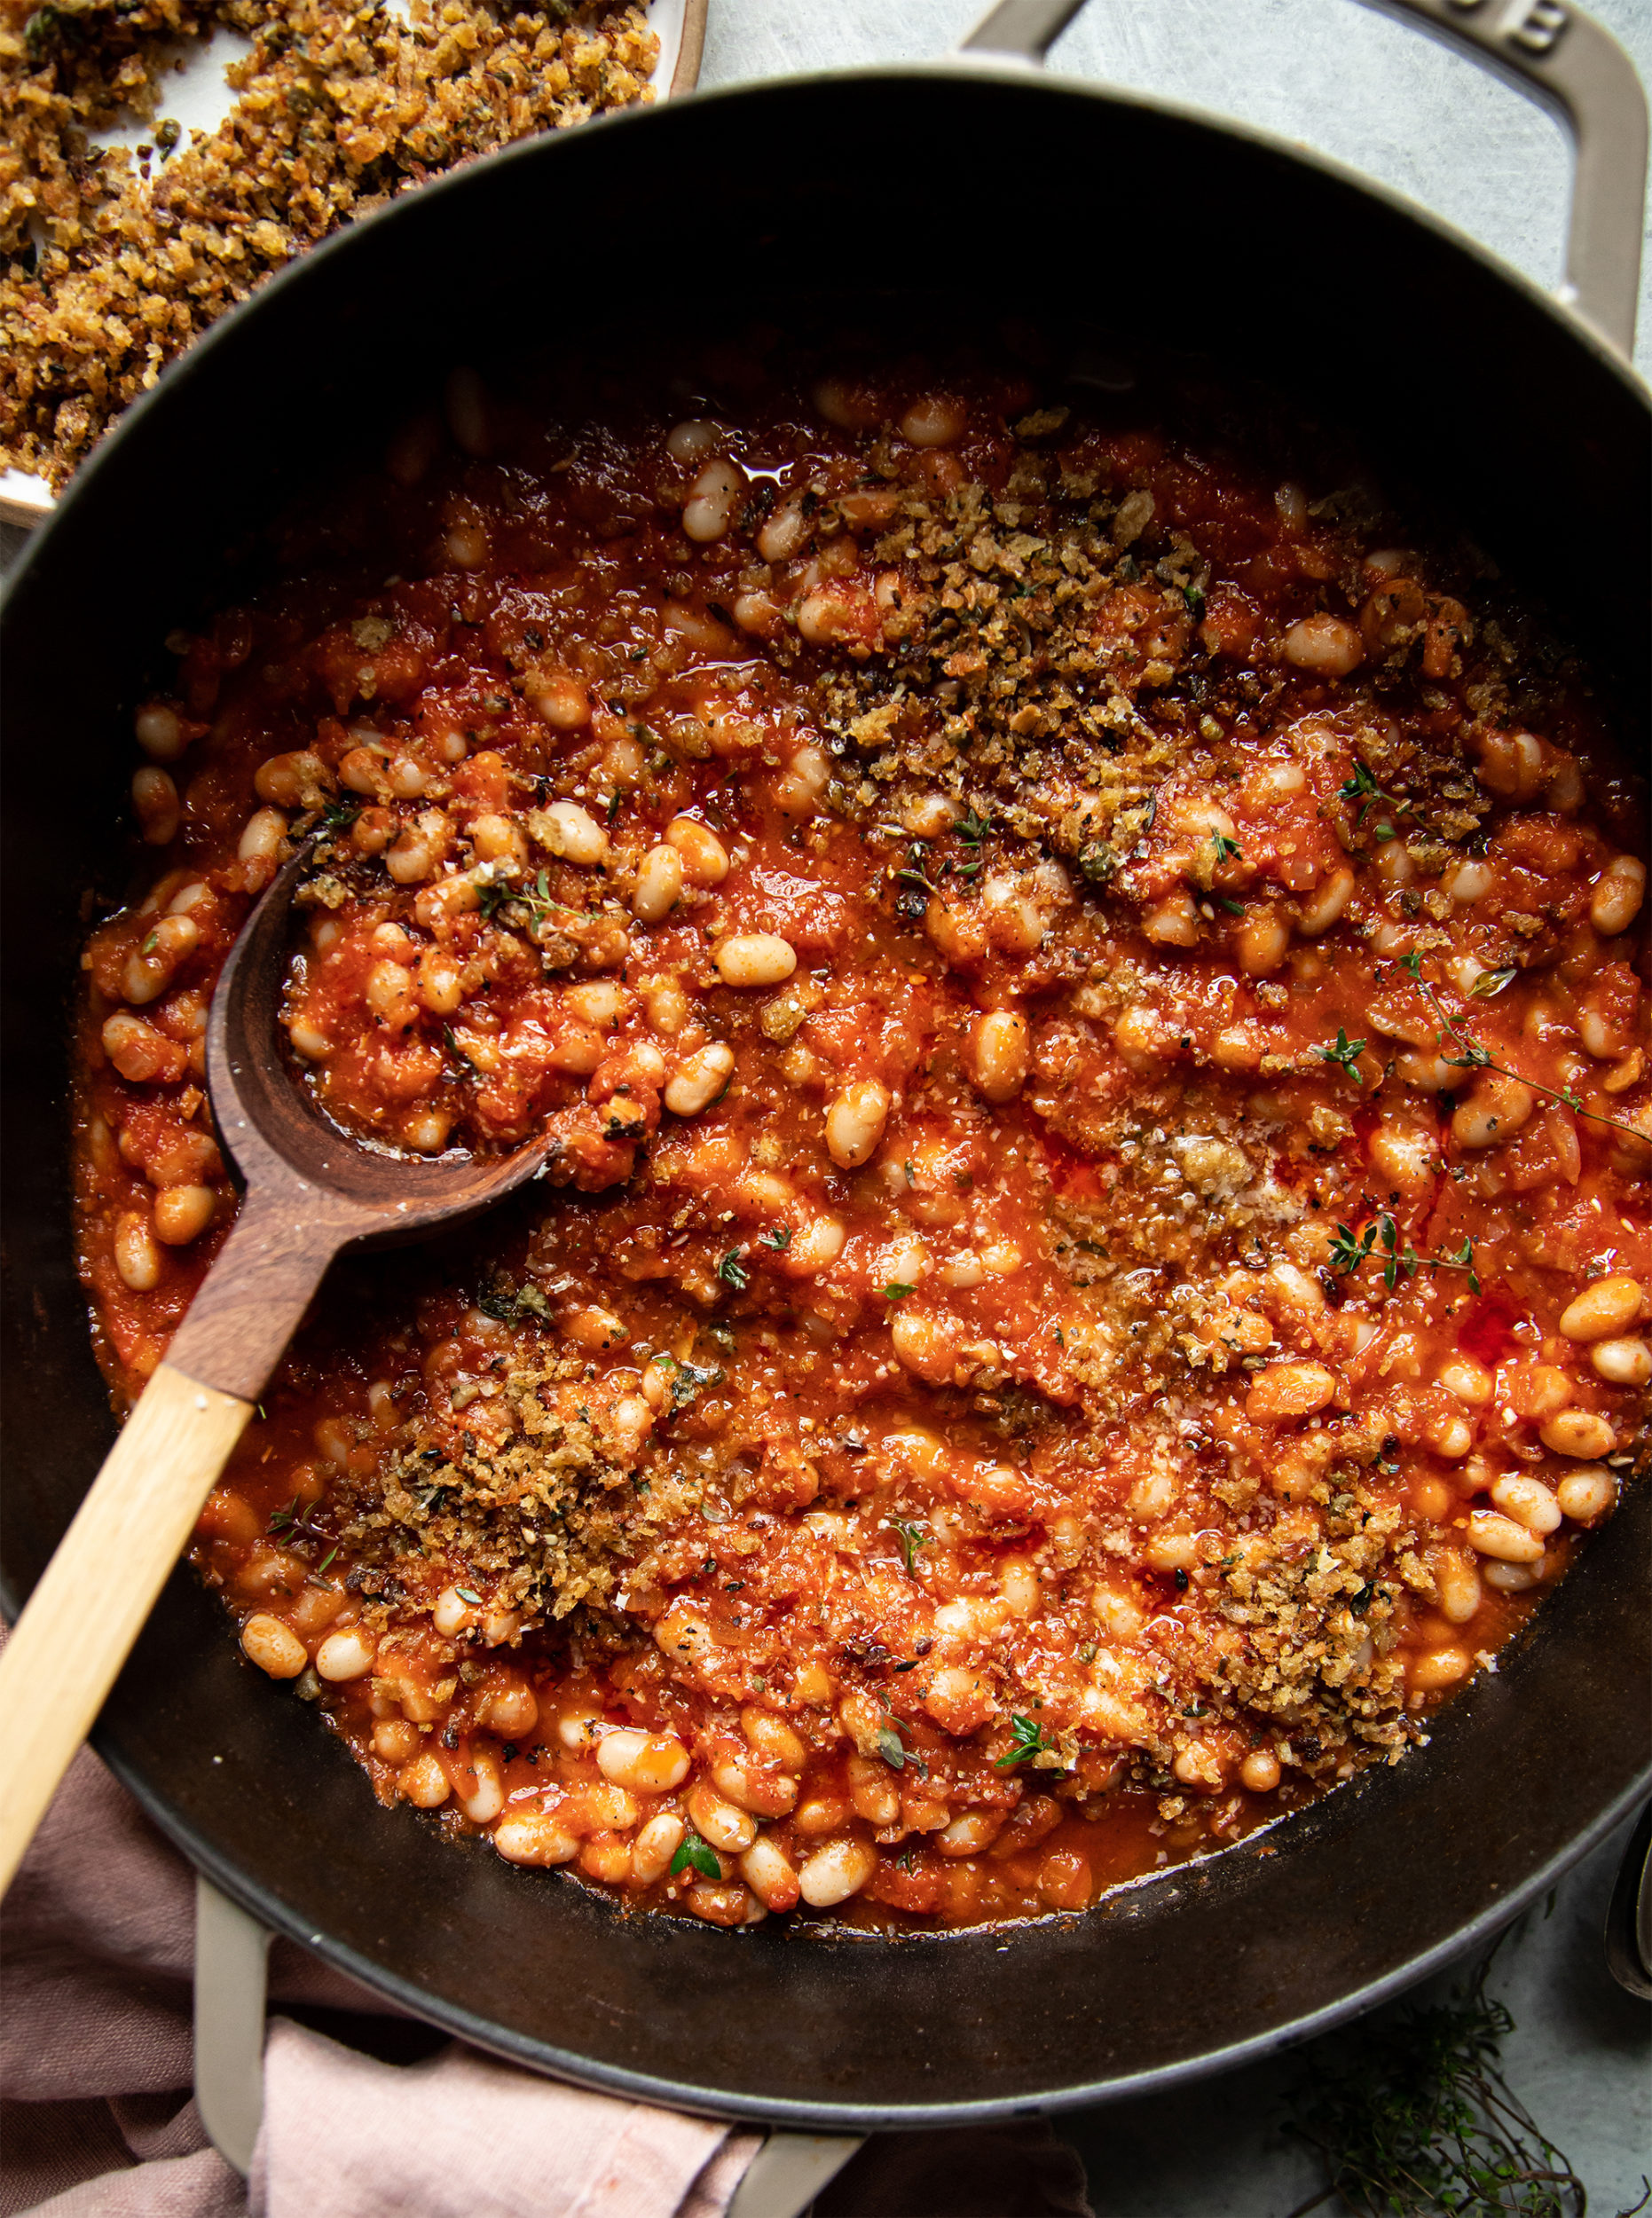 An overhead shot of jammy sun dried tomato white beans in a beige braiser-style pot. The white beans are garnished with crispy cakes breadcrumbs and thyme leaves. There is a wooden spoon sticking out of the pot.